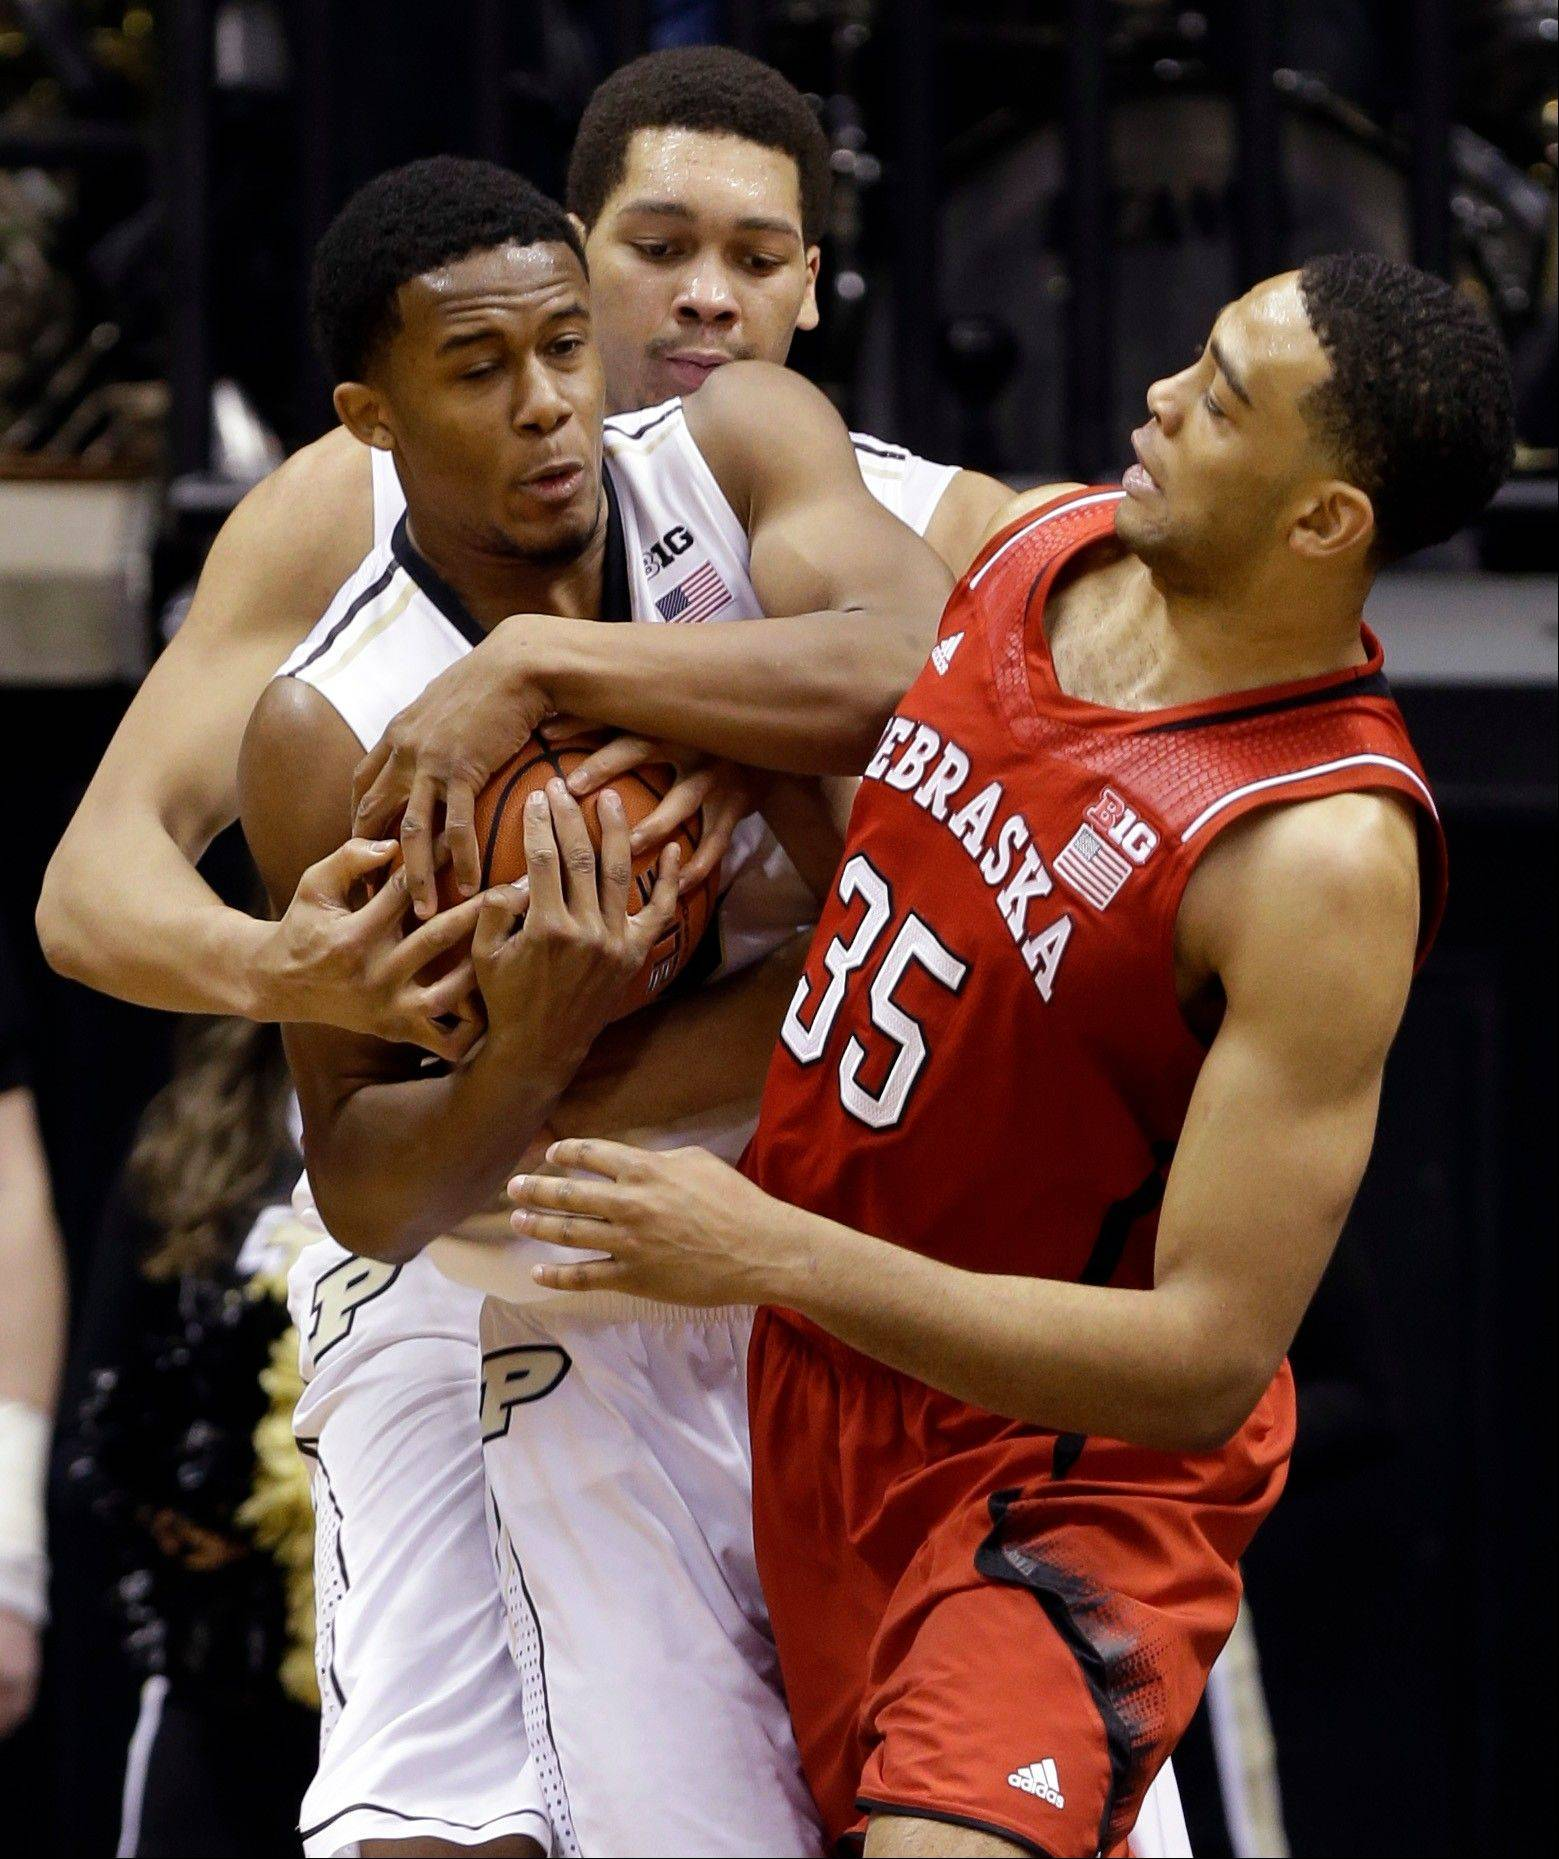 Nebraska forward Walter Pitchford, right, gets tied up with Purdue forward Basil Smotherman, left front, and center A.J. Hammons in the second half of Sunday's game in West Lafayette, Ind.